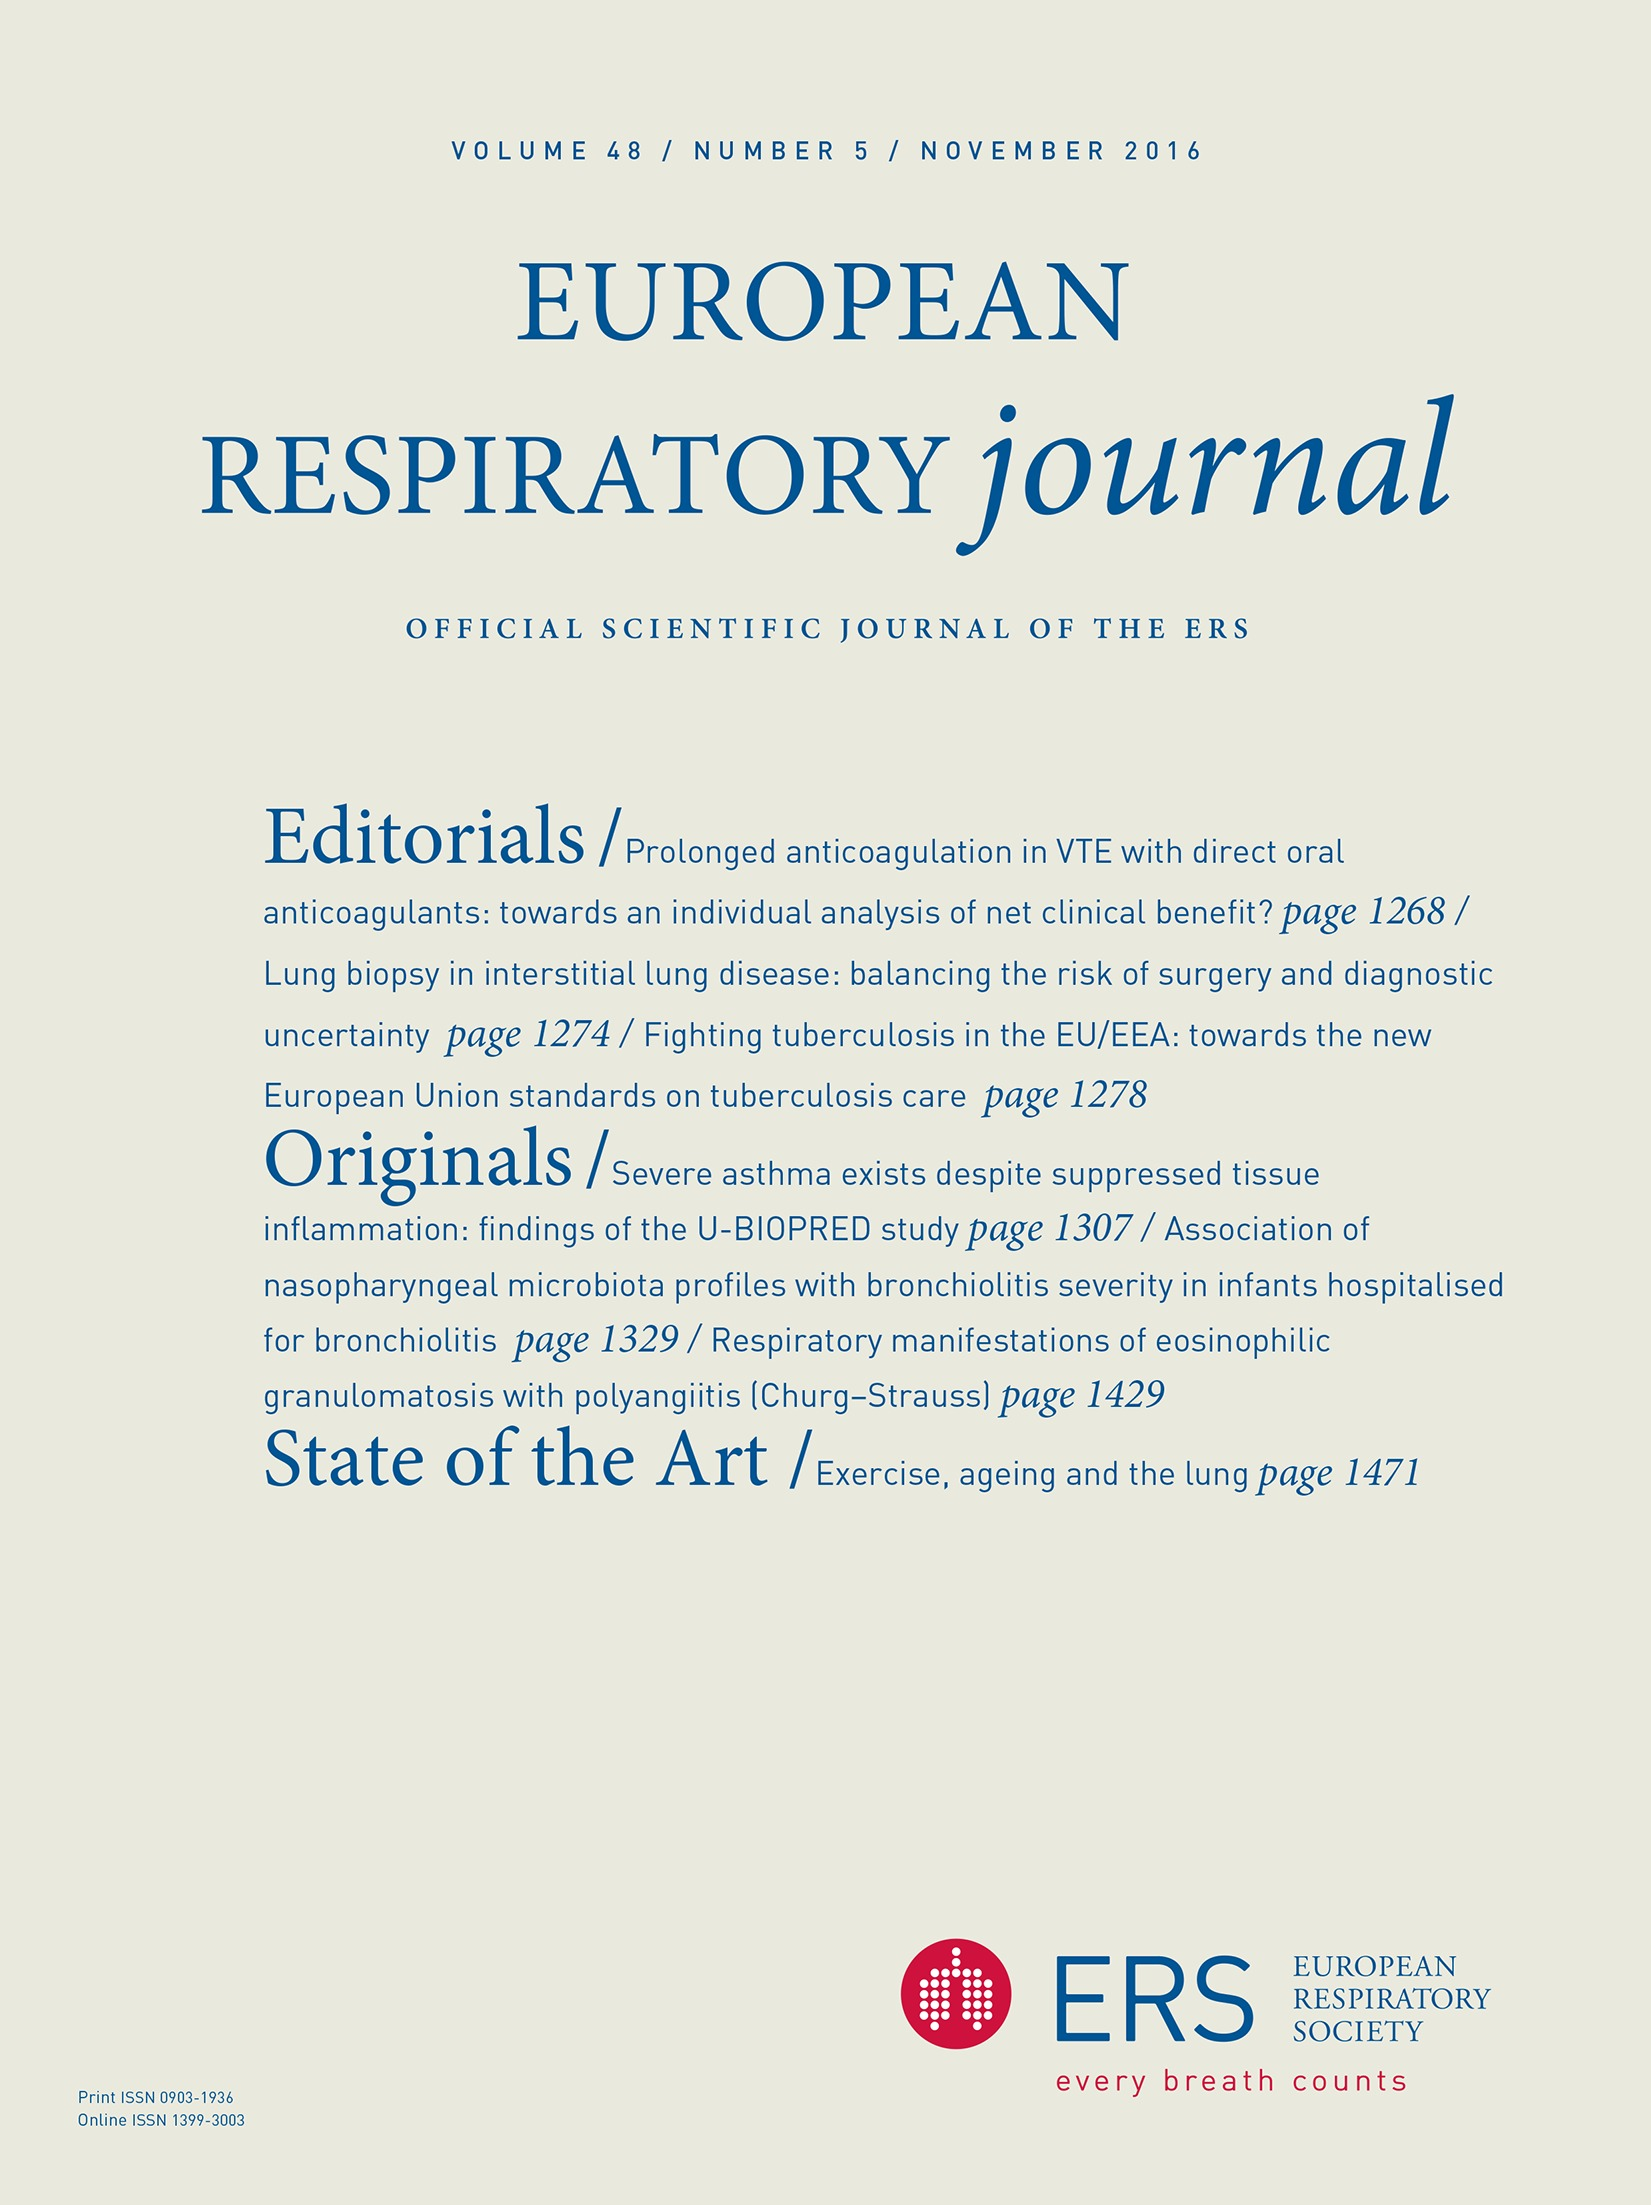 Exercise Ageing And The Lung European Respiratory Society